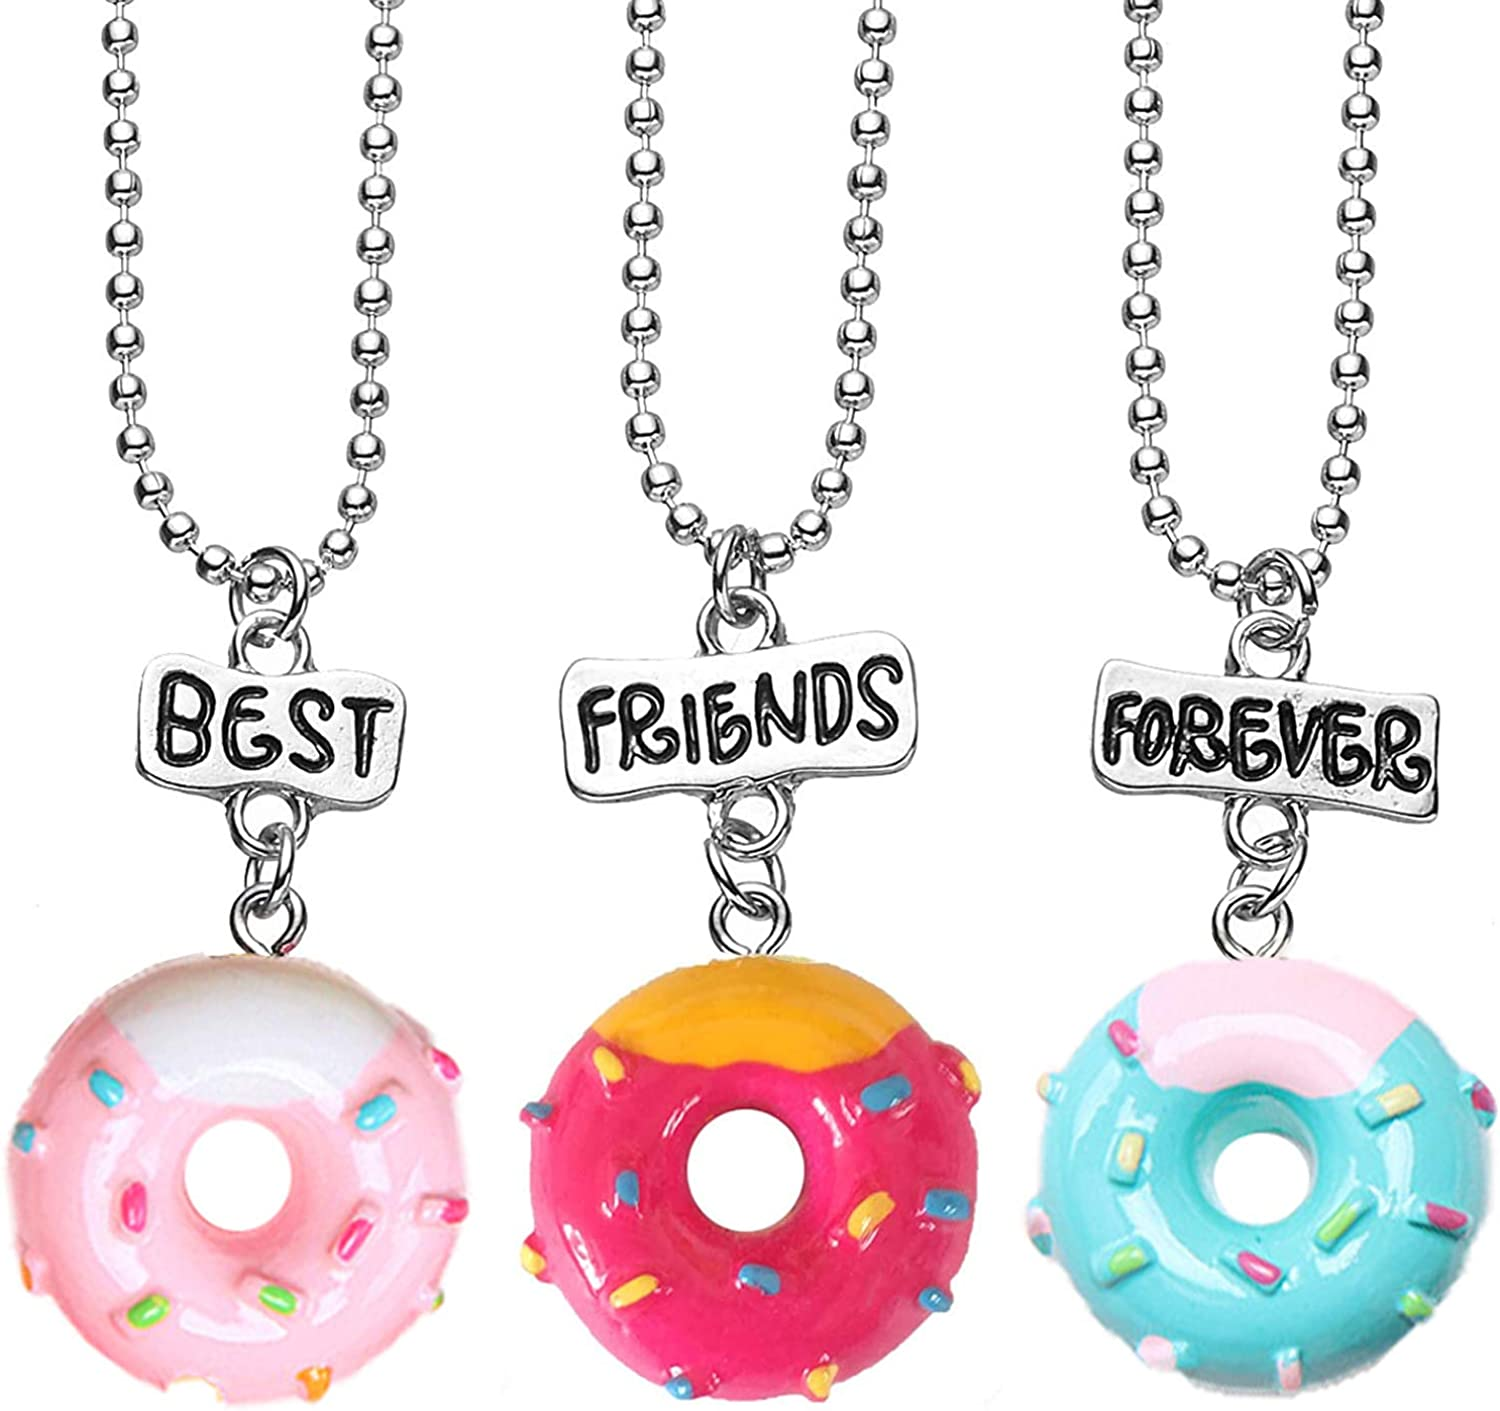 3 Packs Best Friends Forever Resin Pendant BFF Tags Necklaces Set